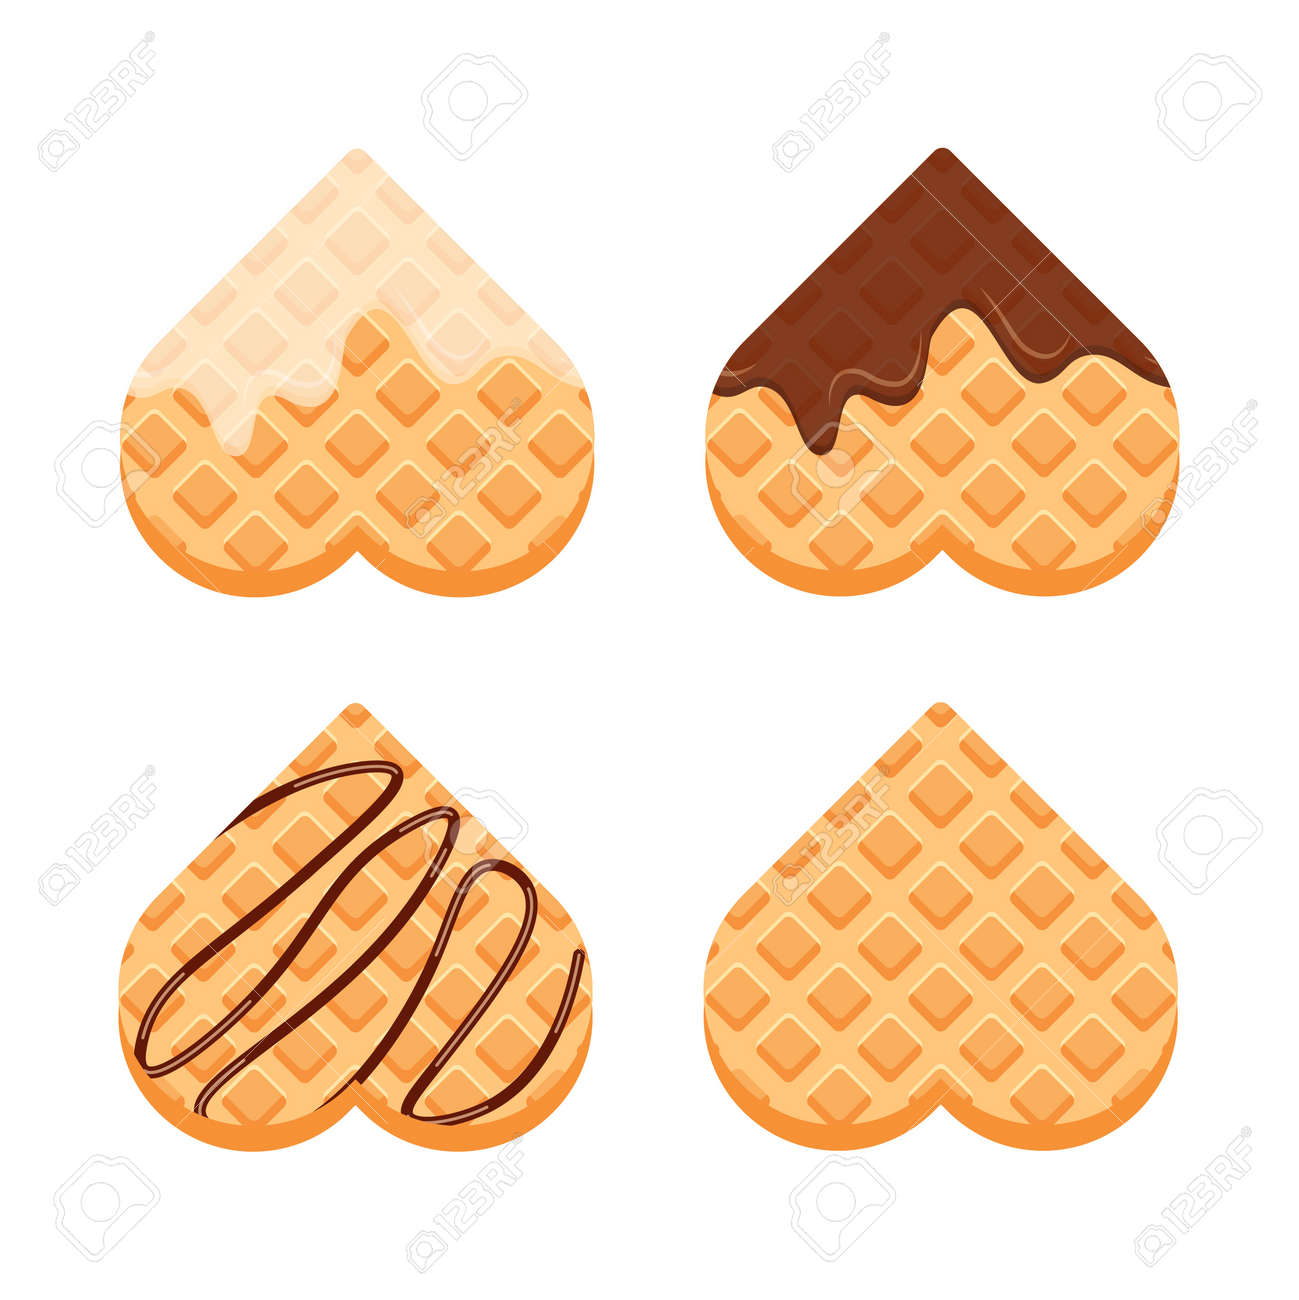 Viennese or belgian waffles with vanilla cream and chocolate. Set of heart shaped waffle. Vector illustration in trendy flat style isolated on white background - 166987579